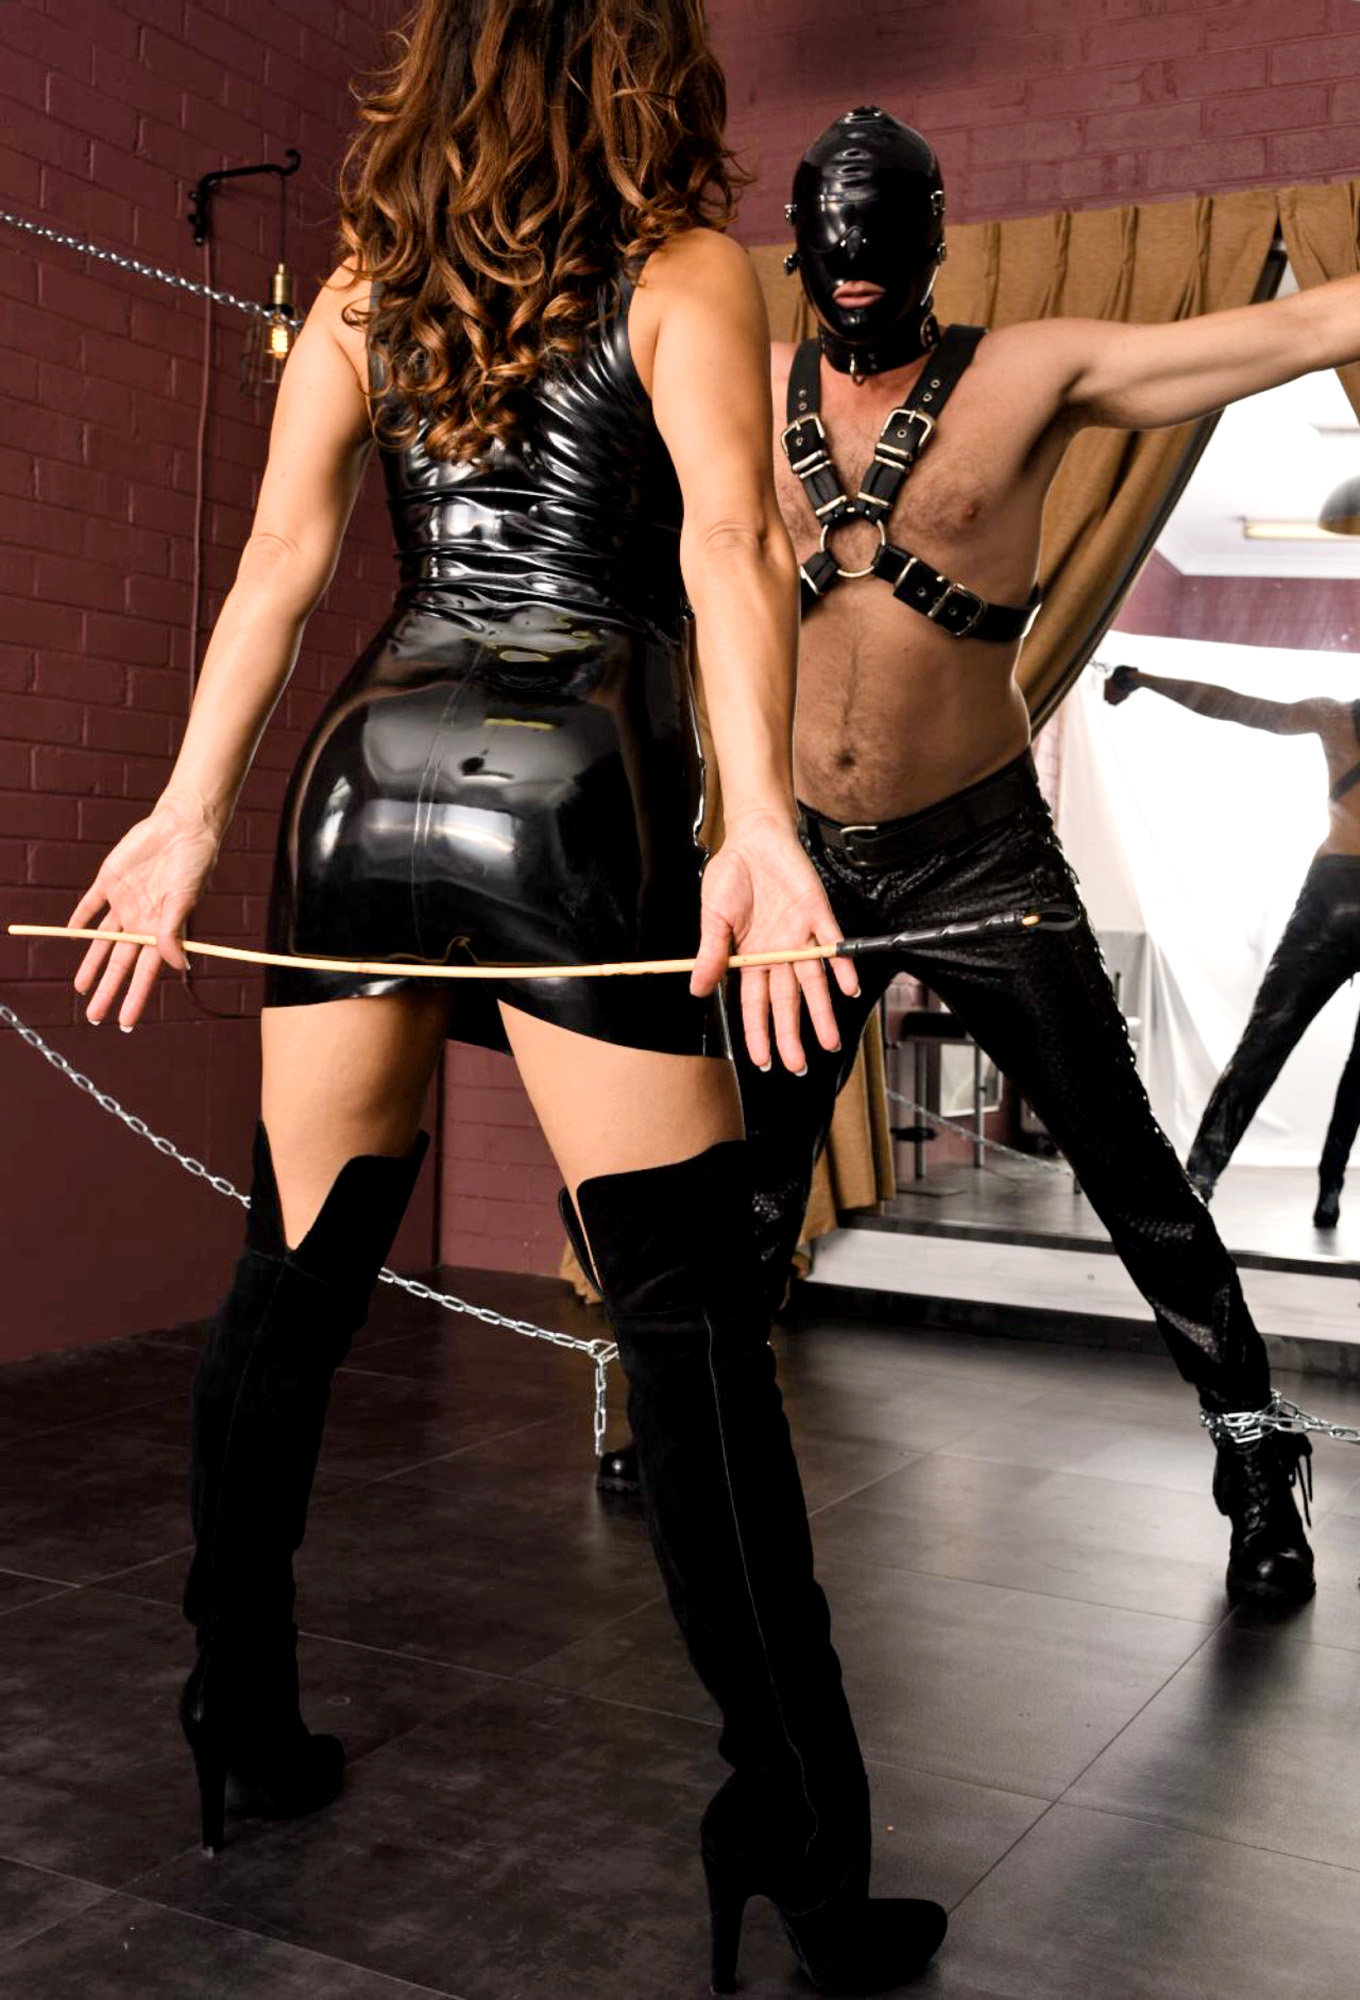 bdsm punishment